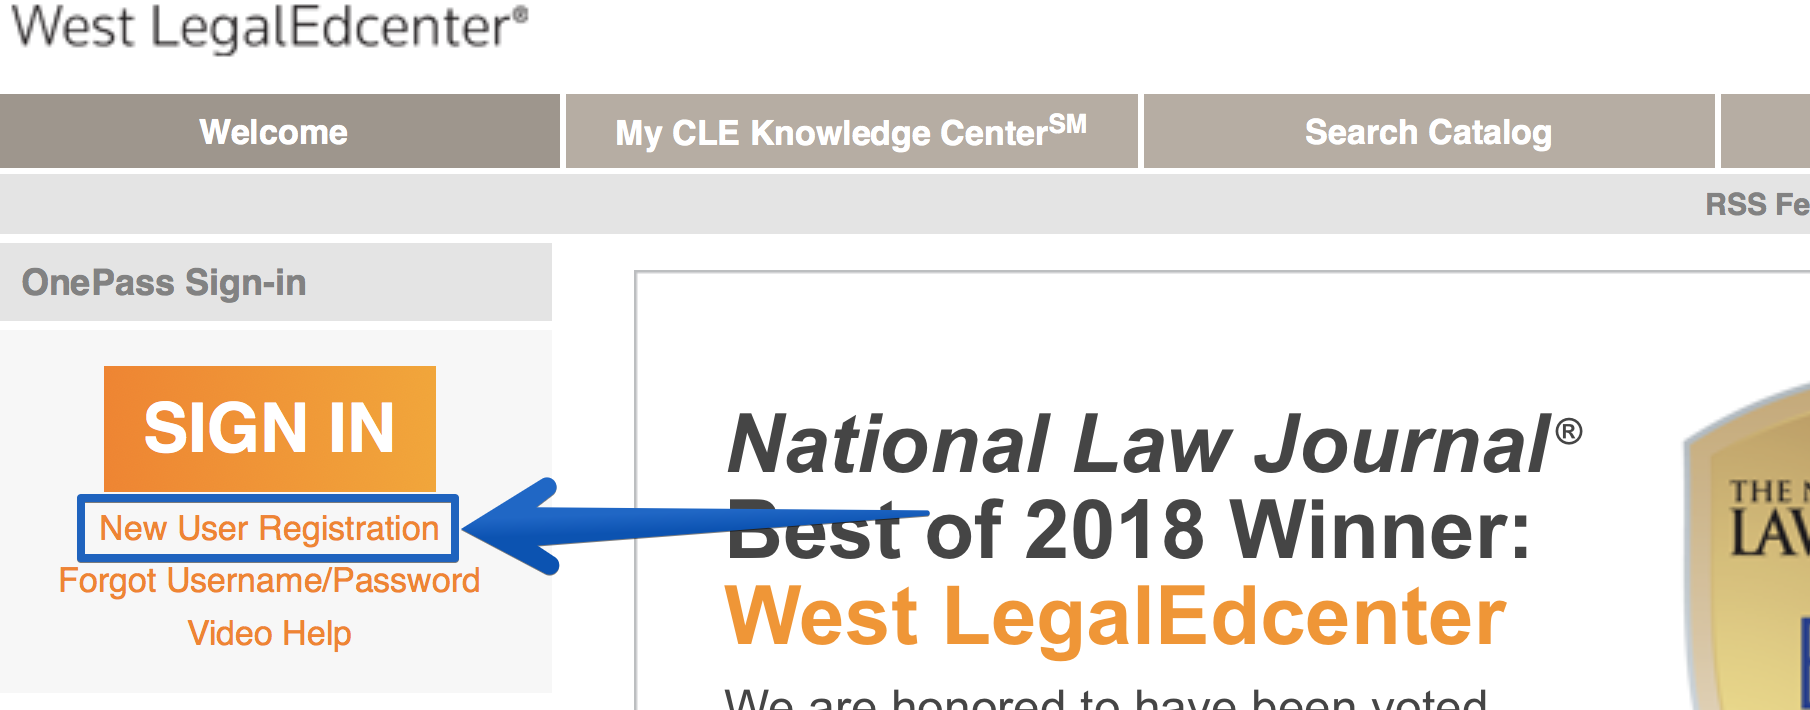 WestLegalEdcenter screenshot -- Click 'New User Registration'